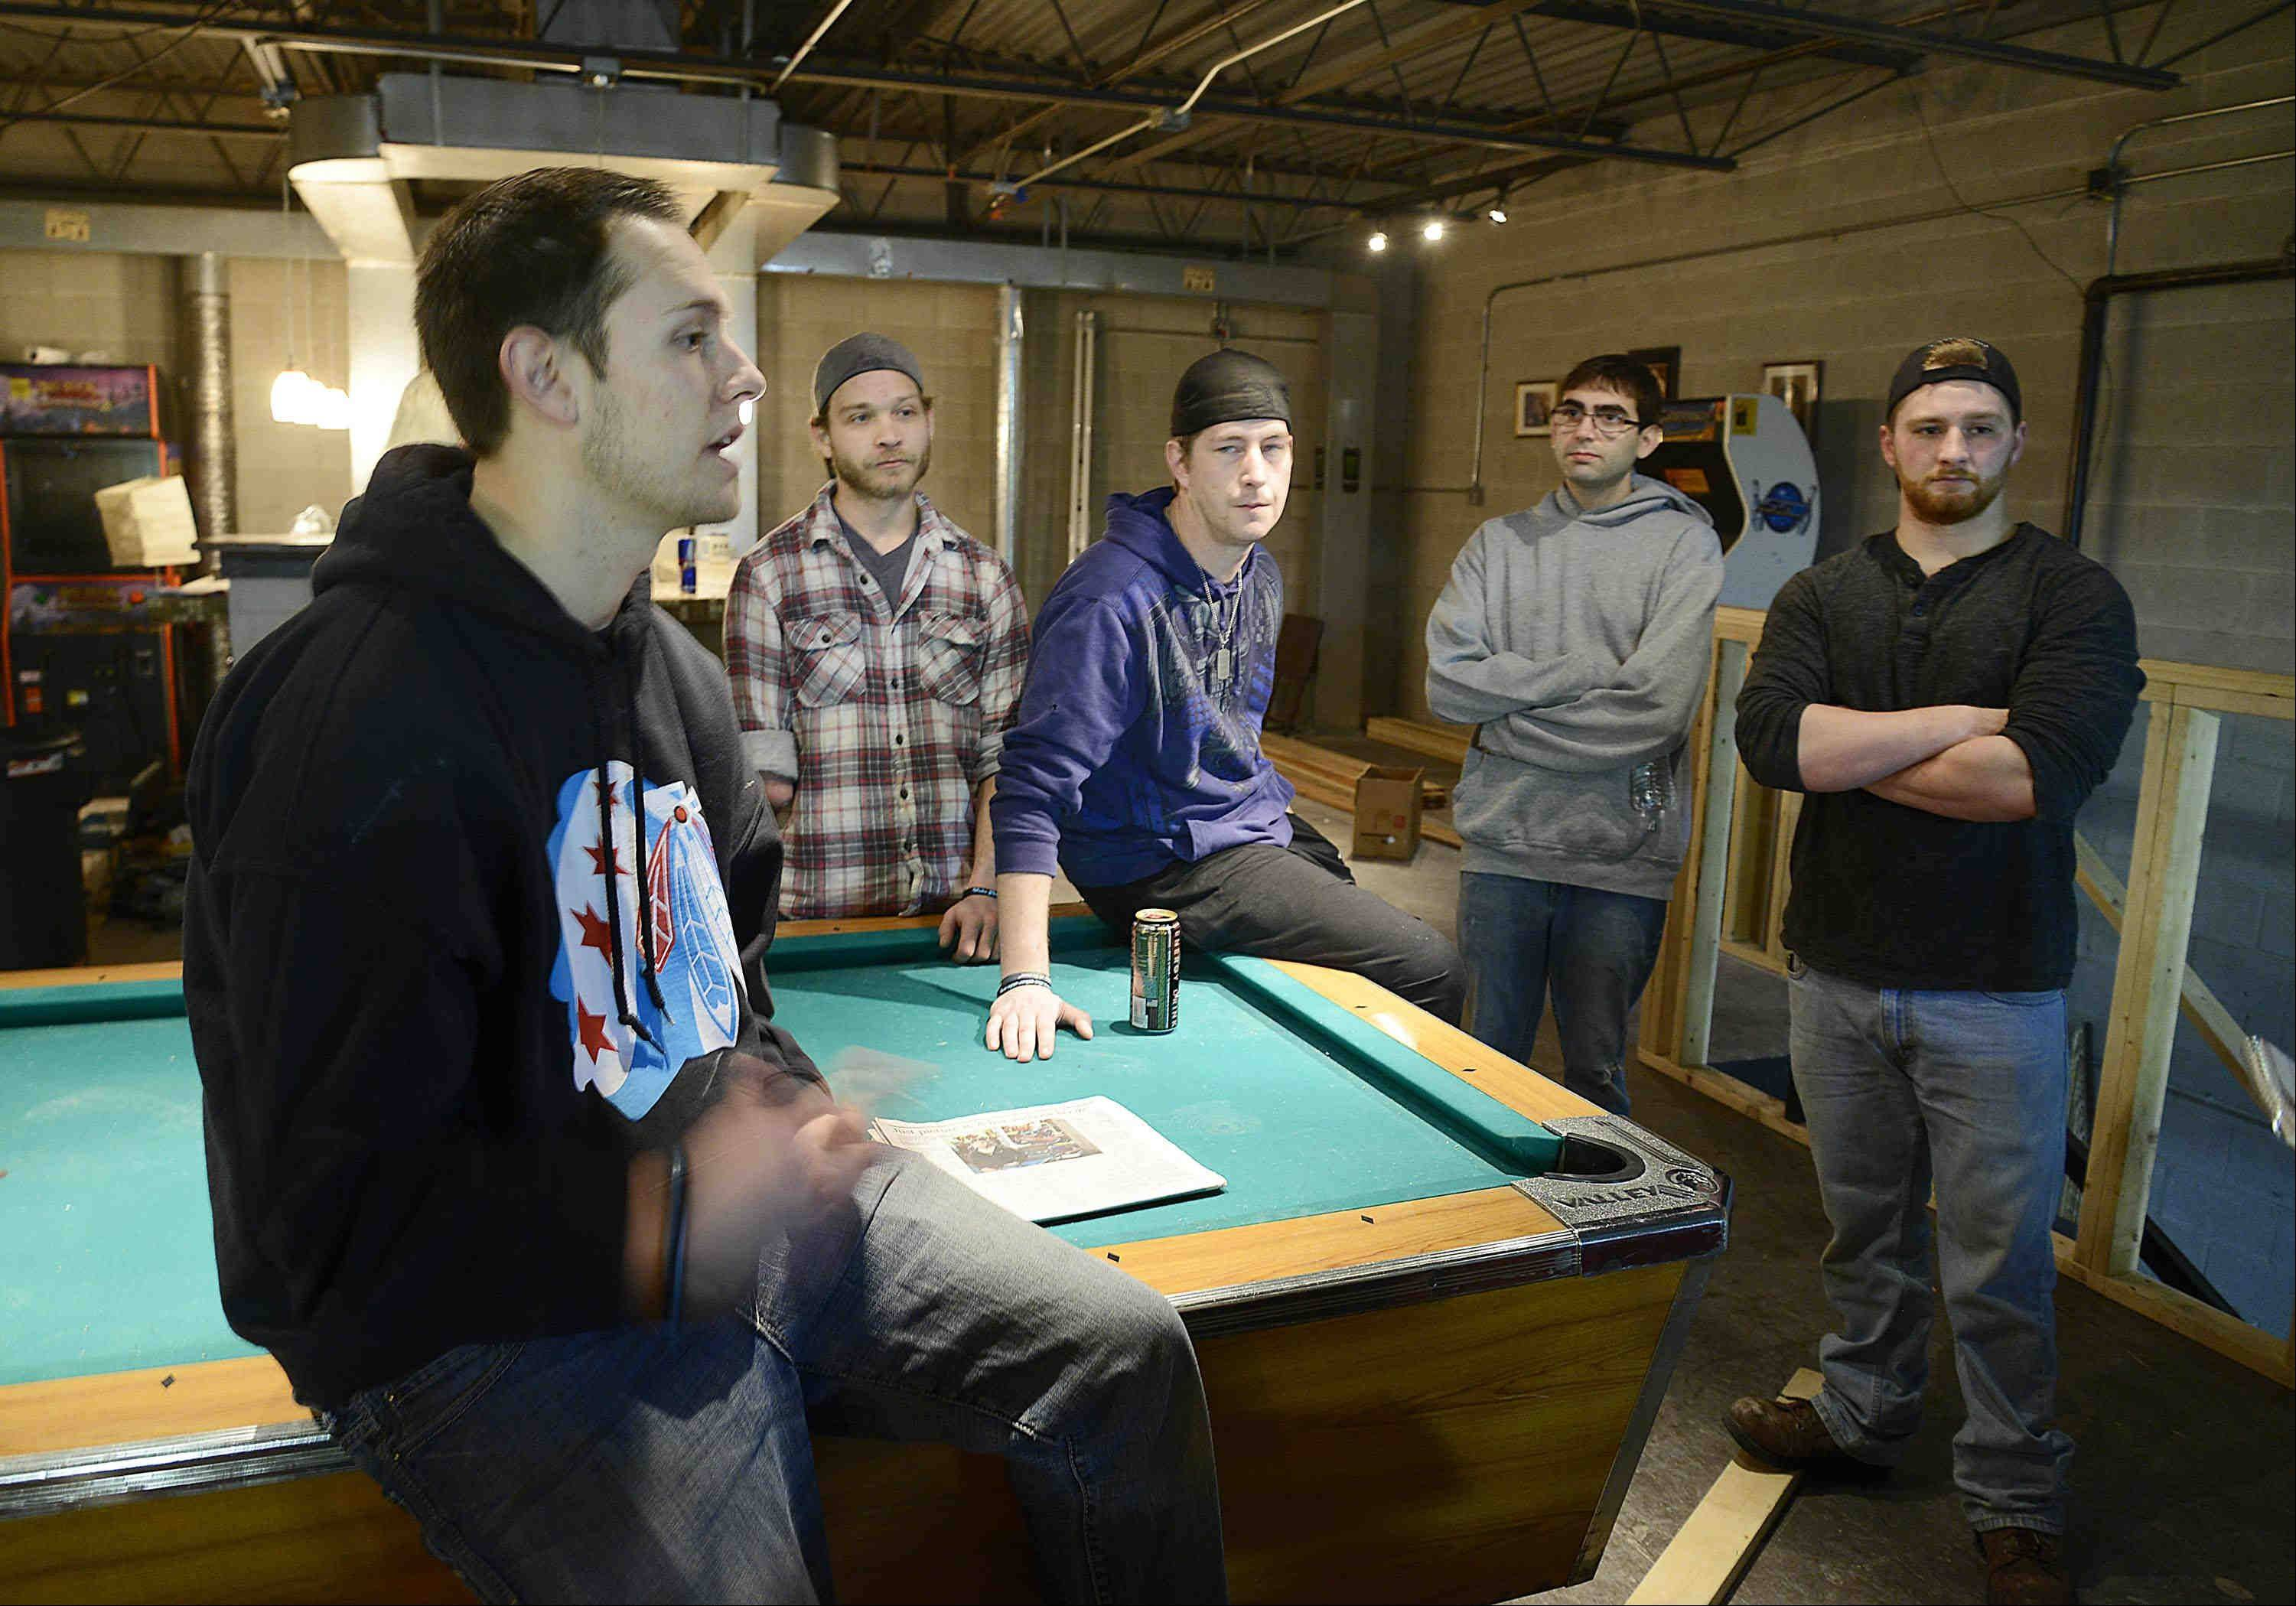 Chris Reed of Algonquin, from left, Aaron Cutler of Crystal Lake, Steve Staley of Lake in the Hills, Joe Bongiovanni of Algonquin and Mike Ledvora of Crystal Lake are opening a sober bar this month in Crystal Lake called The Other Side.